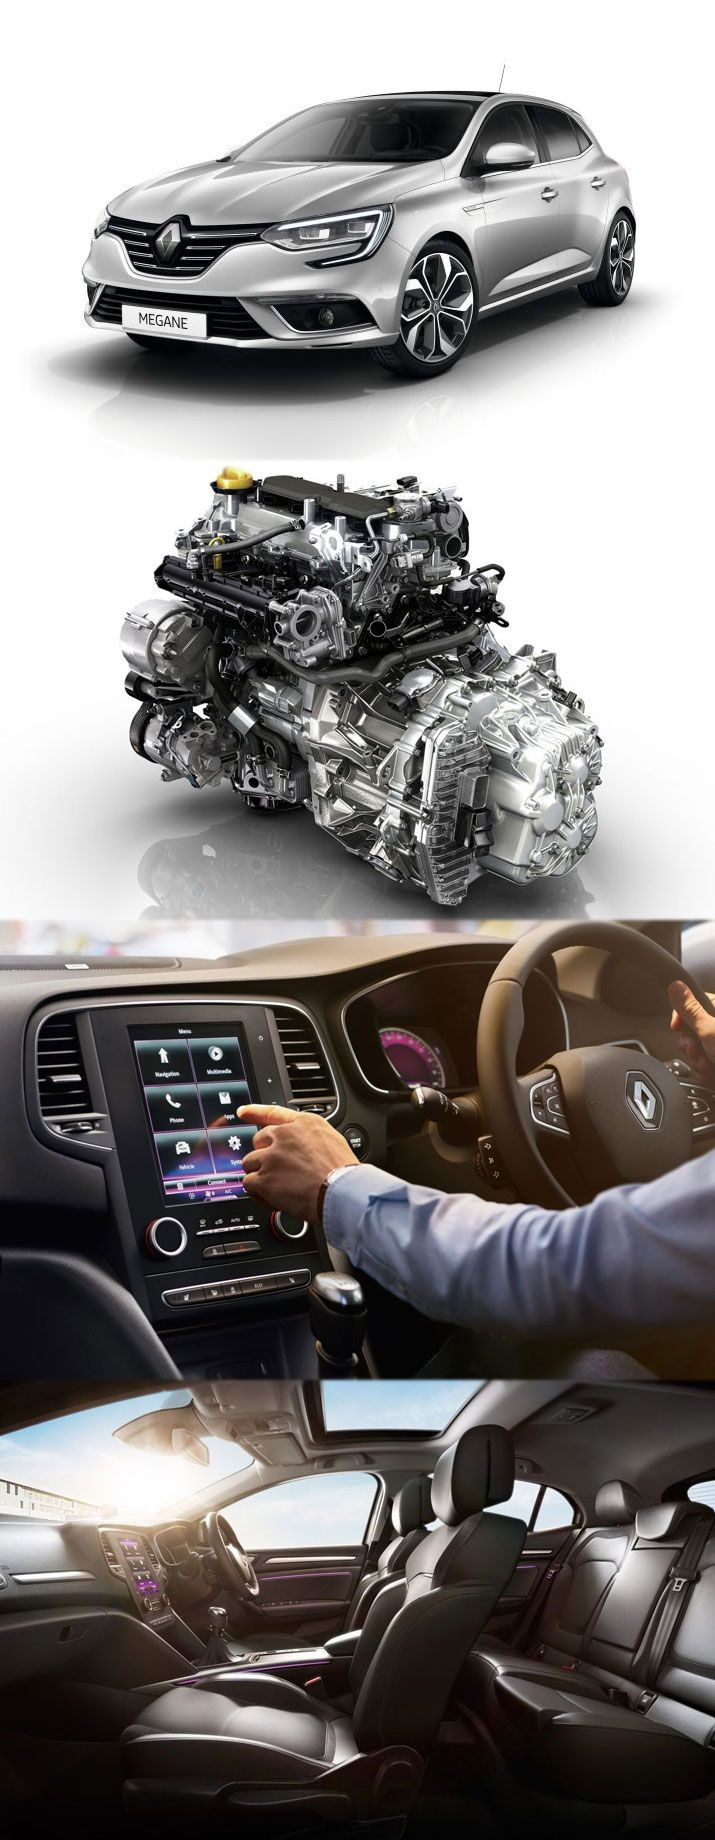 The all new renault megane with stunning features renaultmegane renaultmeganeengine touchscreentechnology